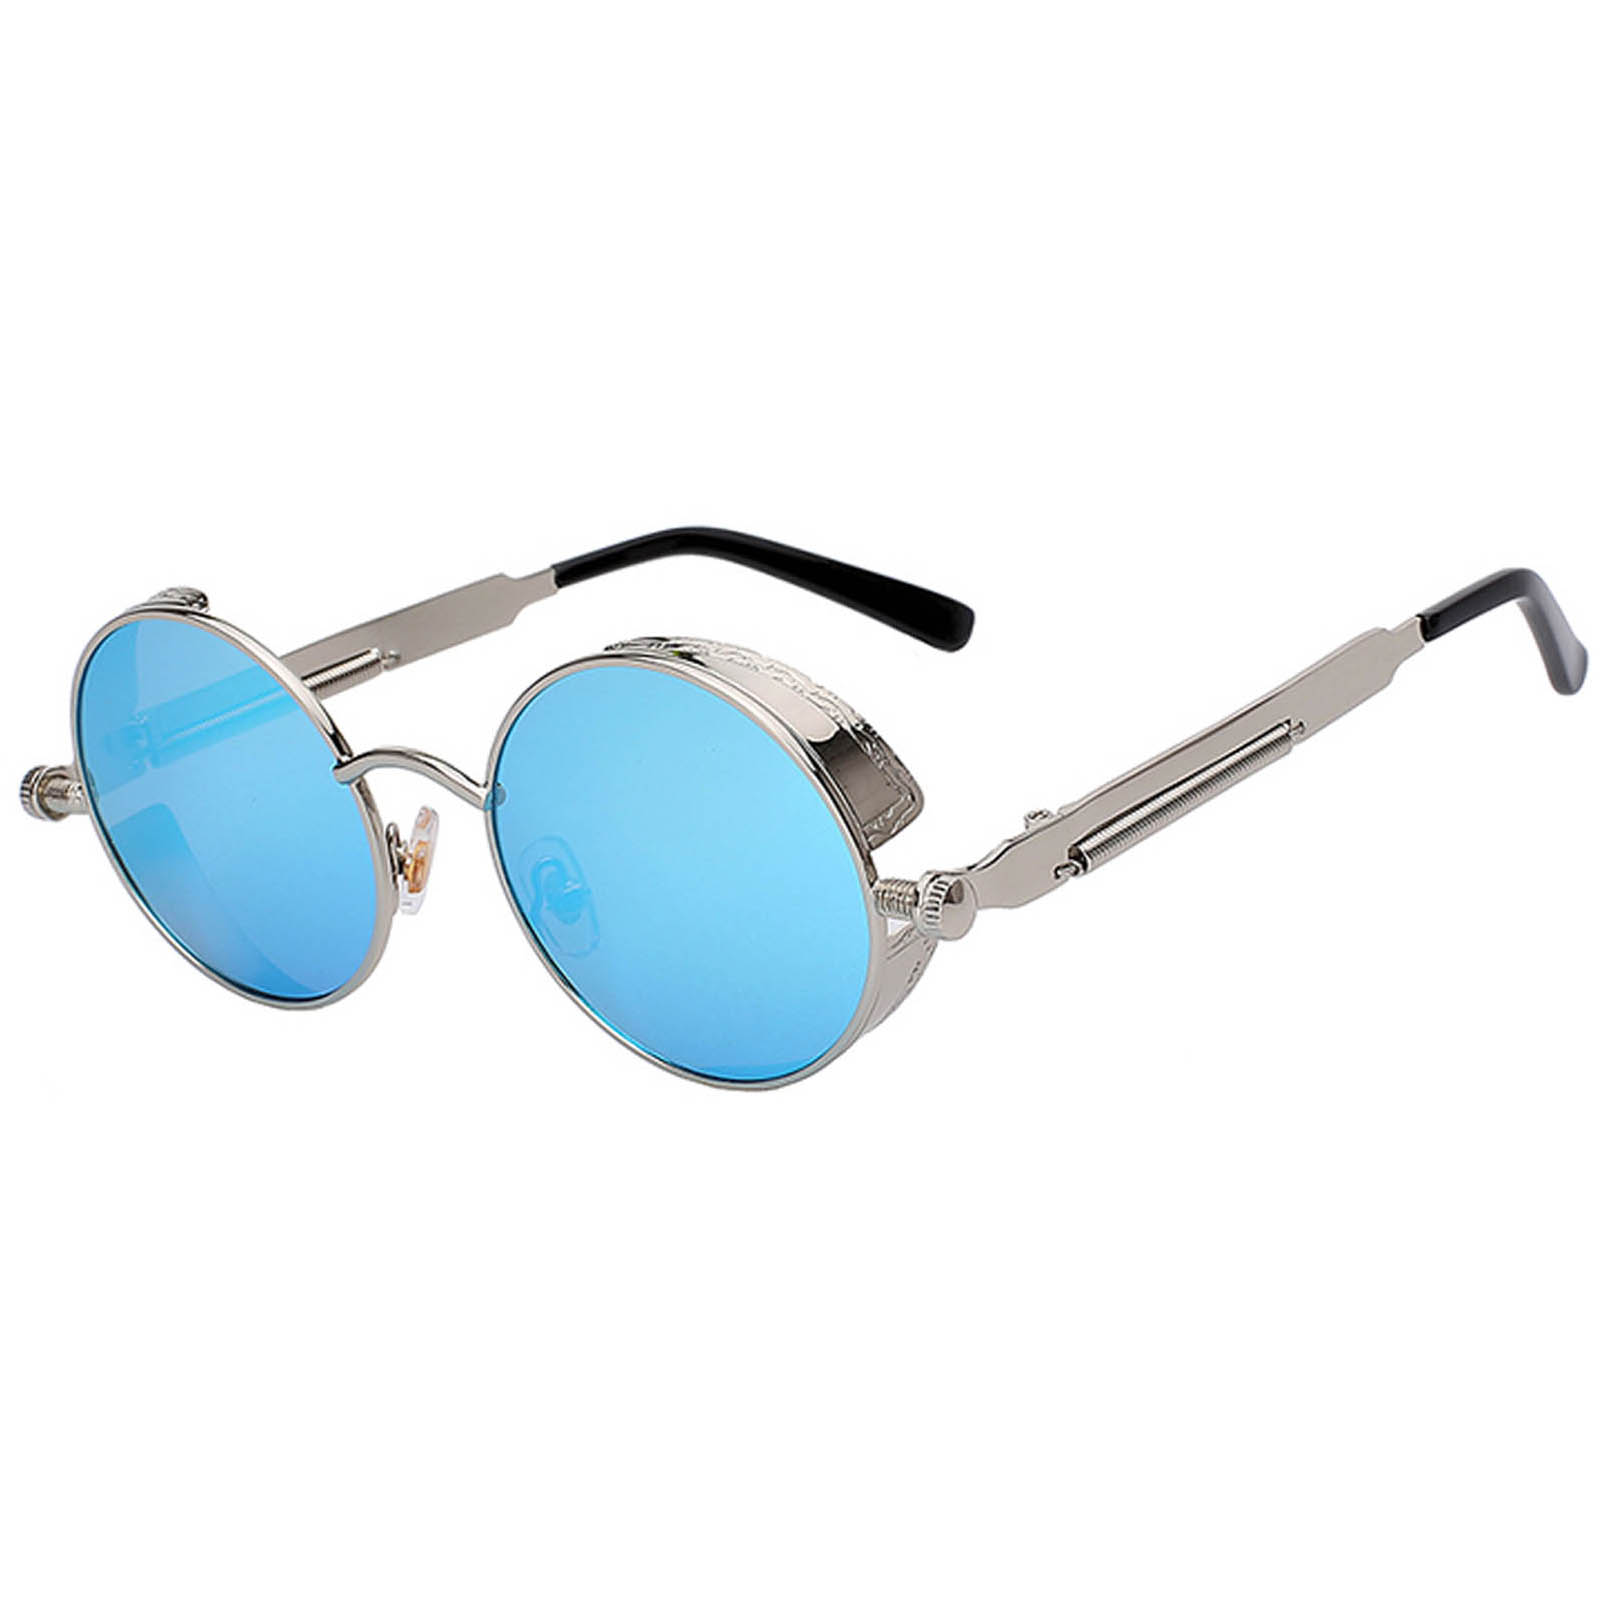 52c29a7bd01f OWL ® Steampunk C6 Gothic Eyewear Sunglasses Women's Men's Metal Round  Circle Silver Frame Blue Ice